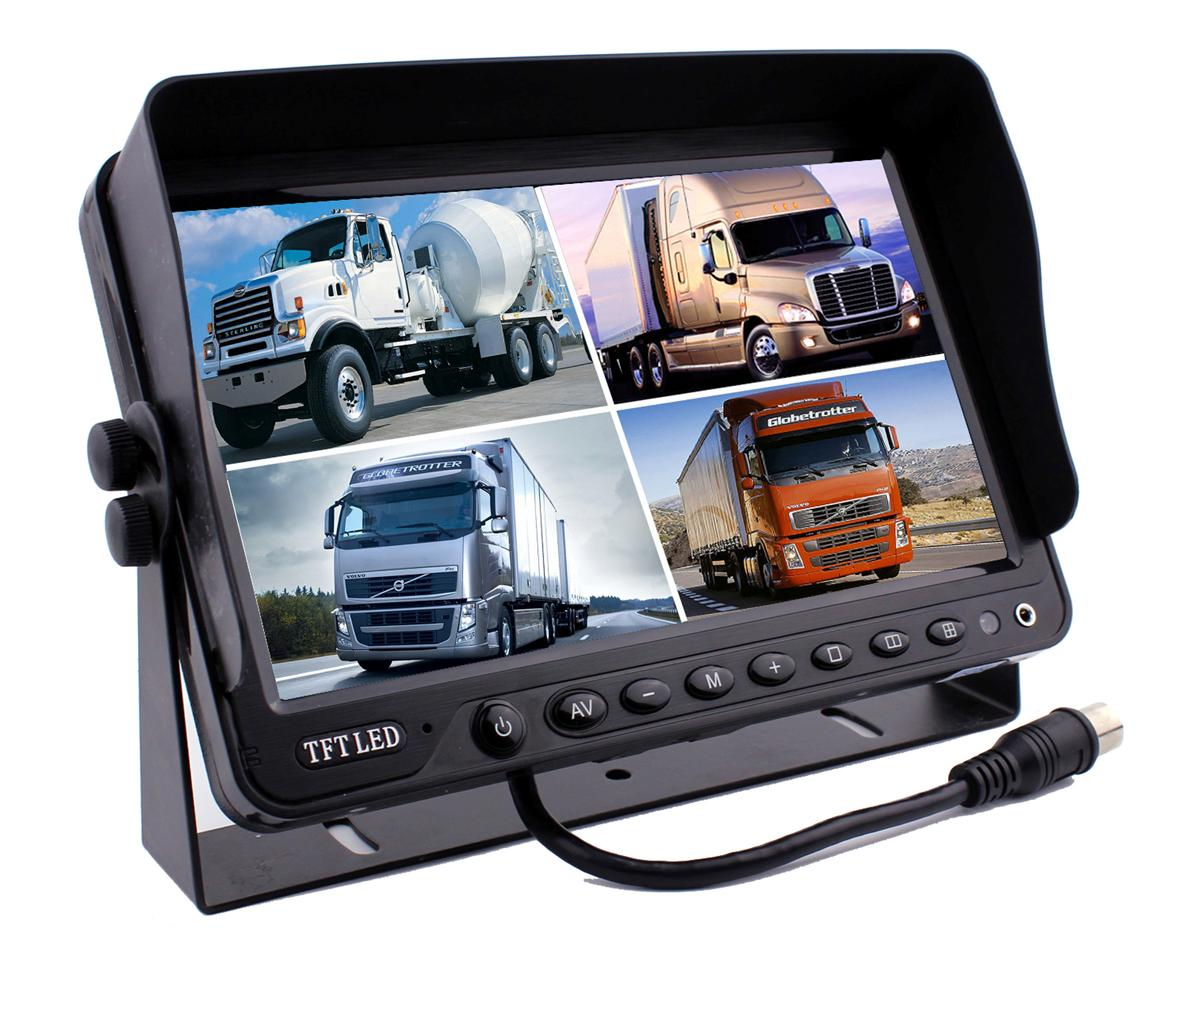 Rv Systems Monitor : Quot quad monitor with dvr backup cameras safety system for